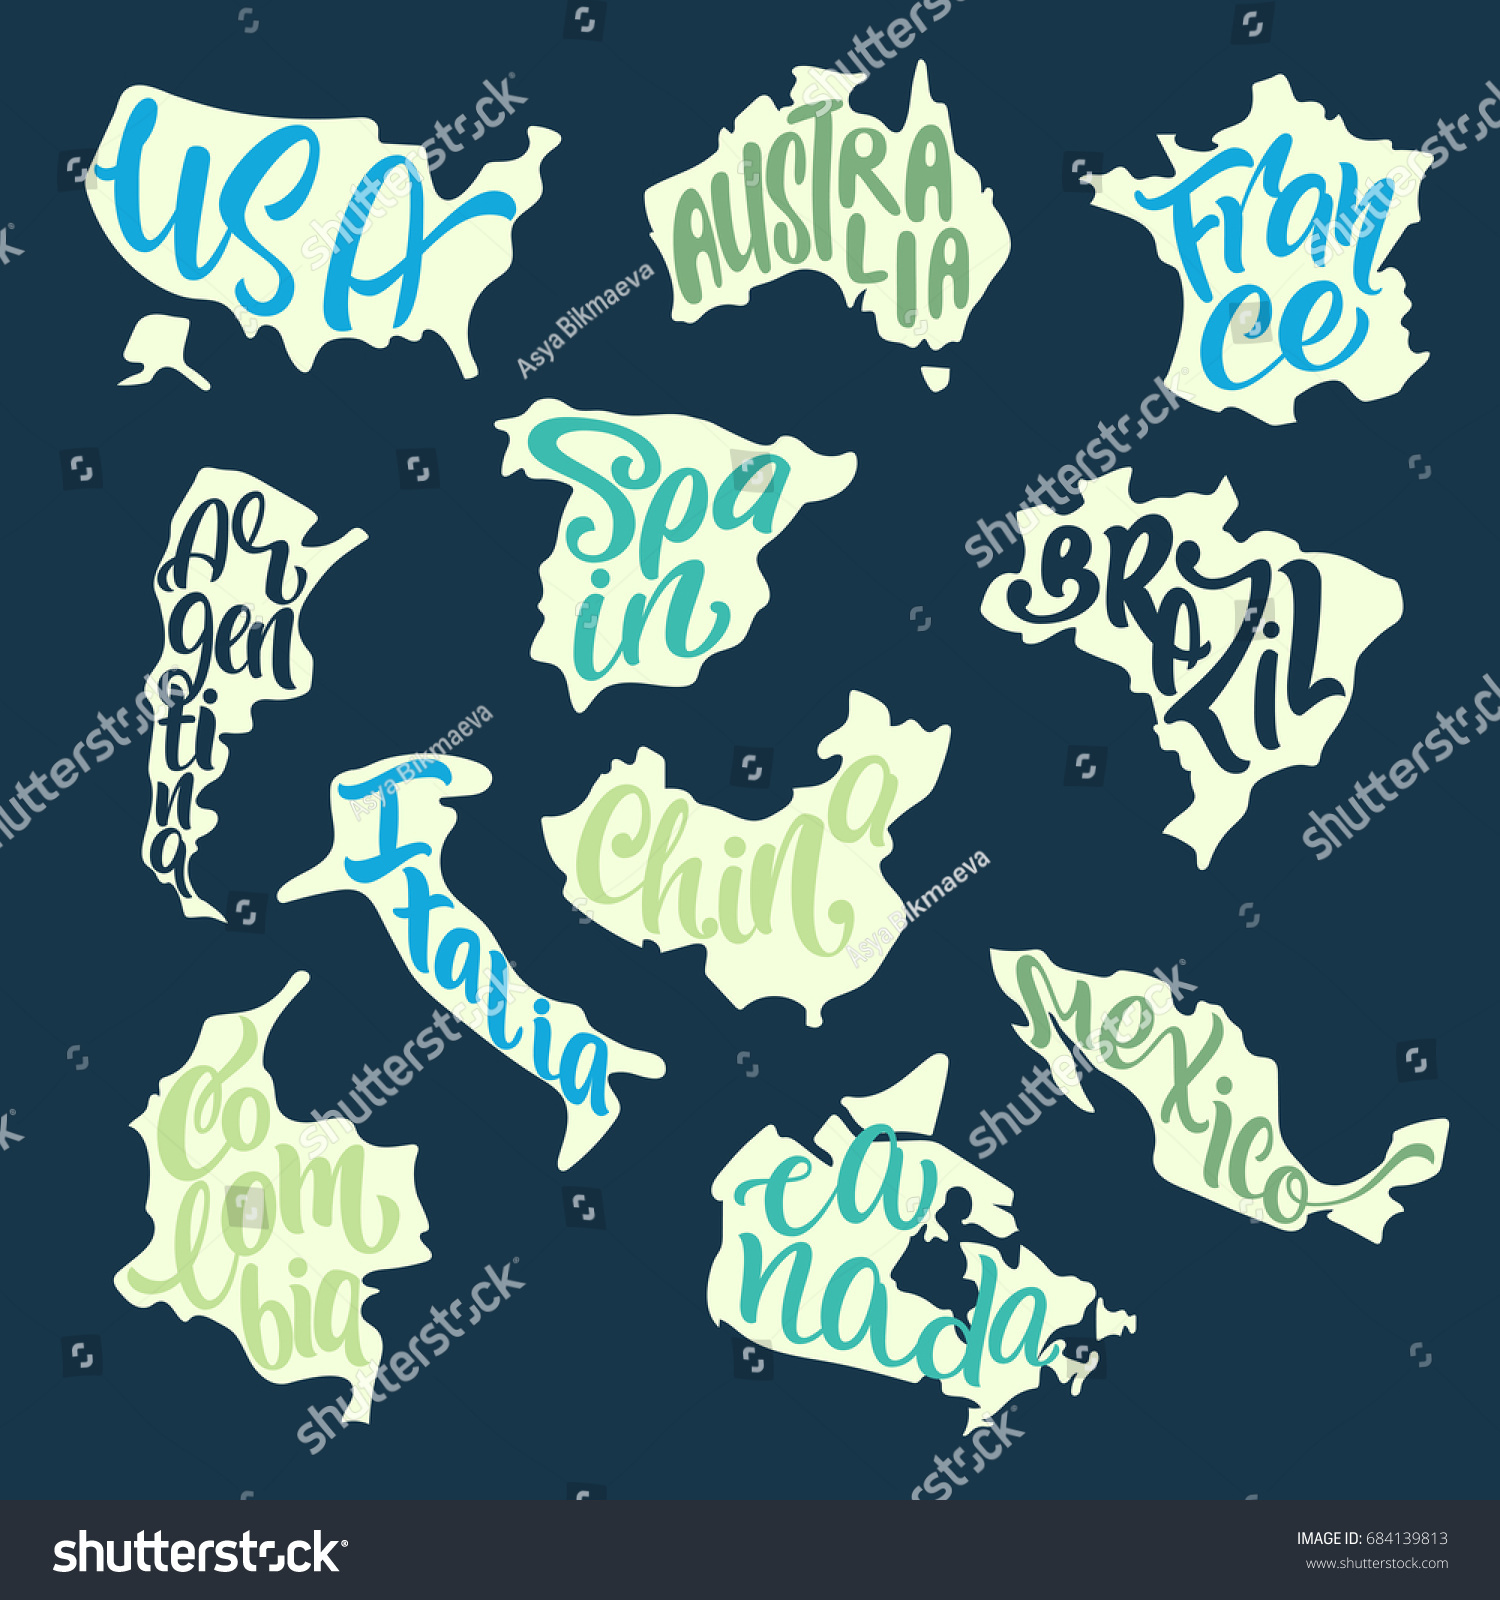 Handwritten Lettering Country Names Inscribed Silhouette Stock